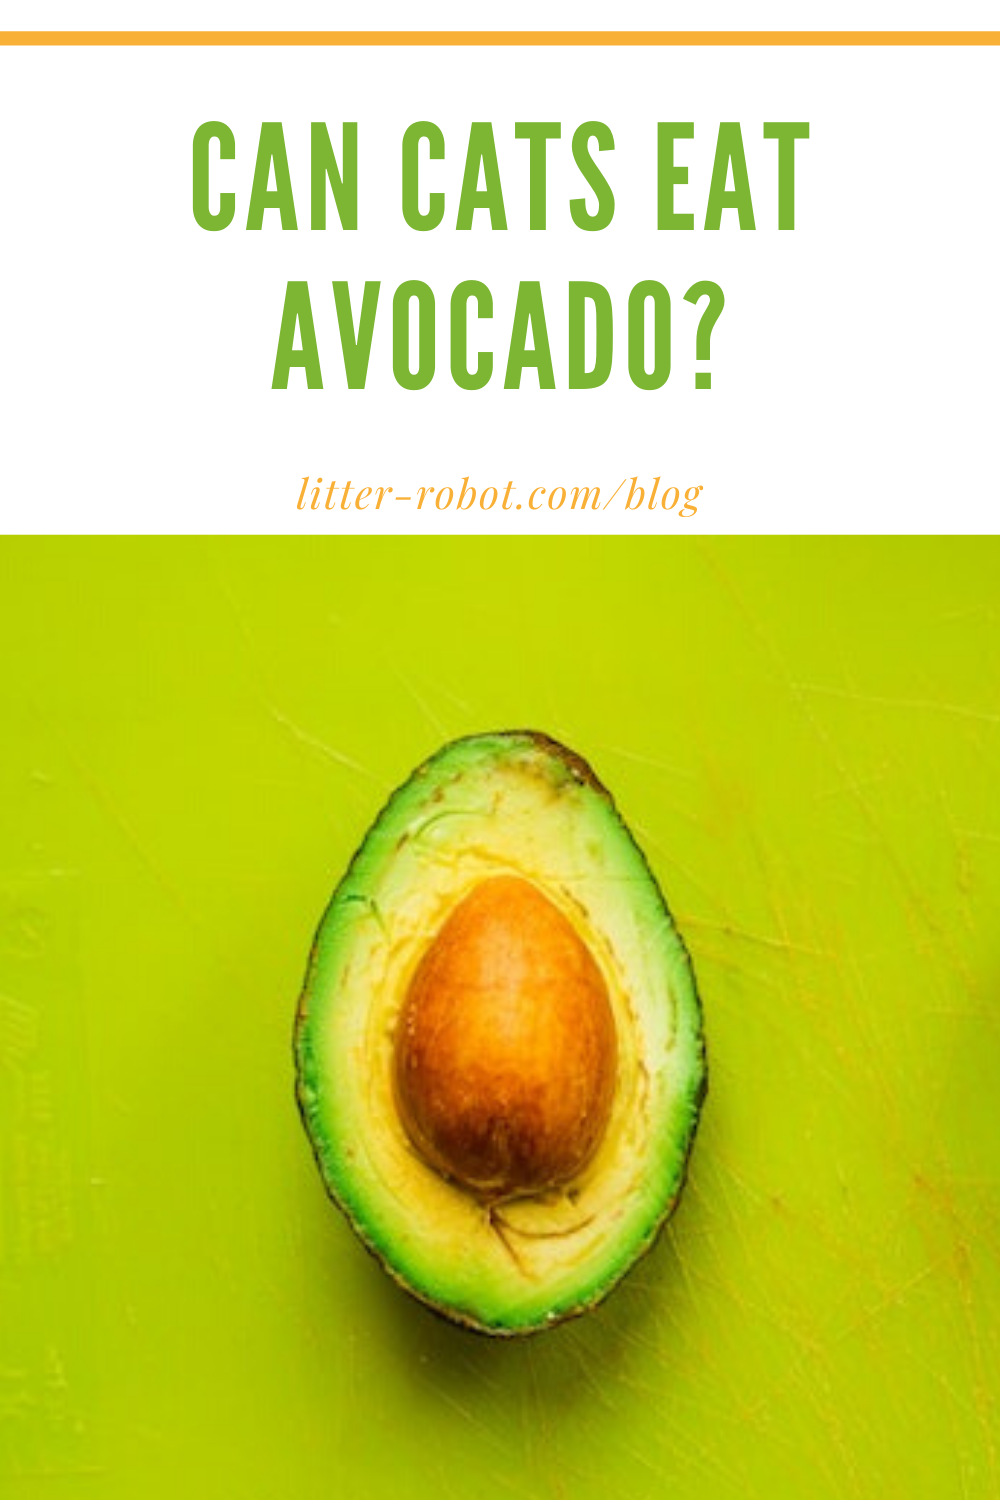 Can Cats Eat Avocado? Learn more on LitterRobot Blog in